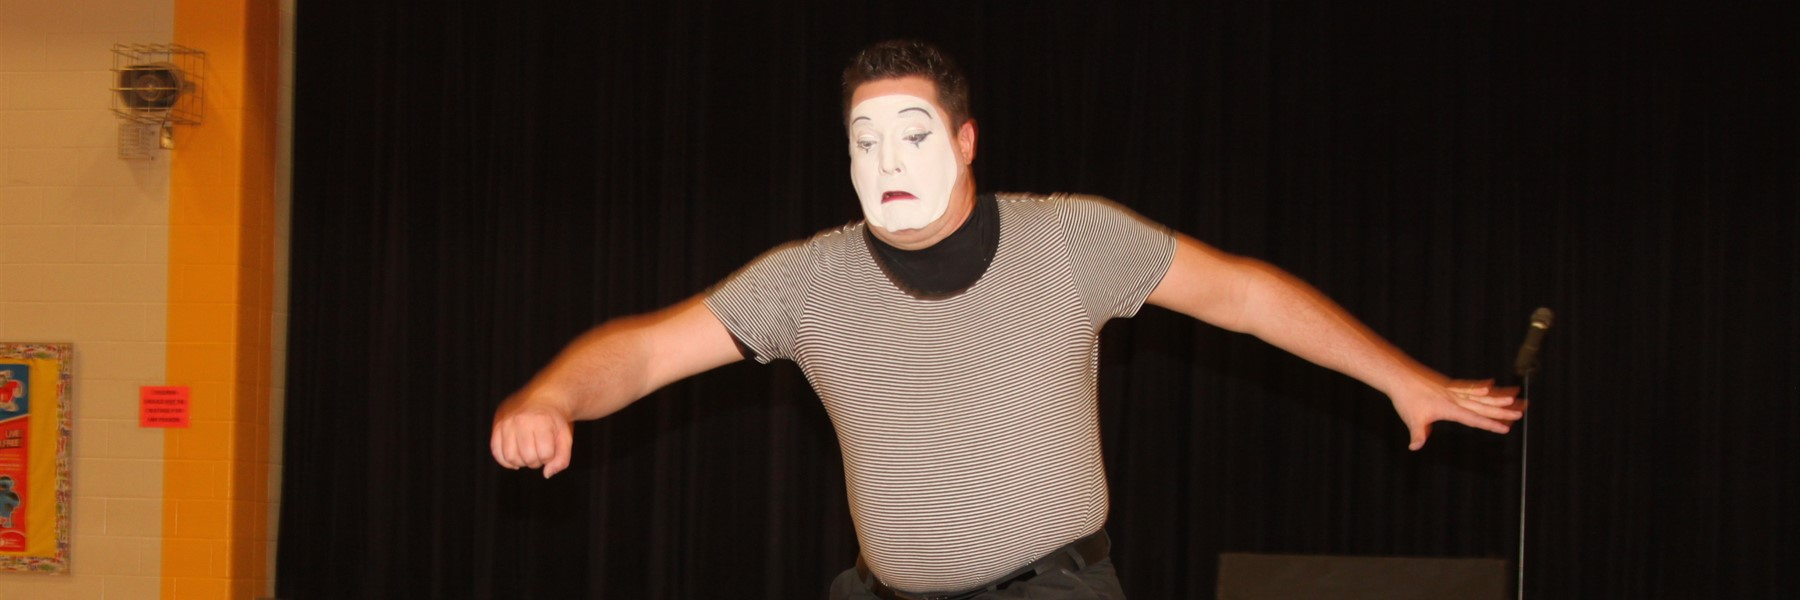 Mime Shows up at Southern